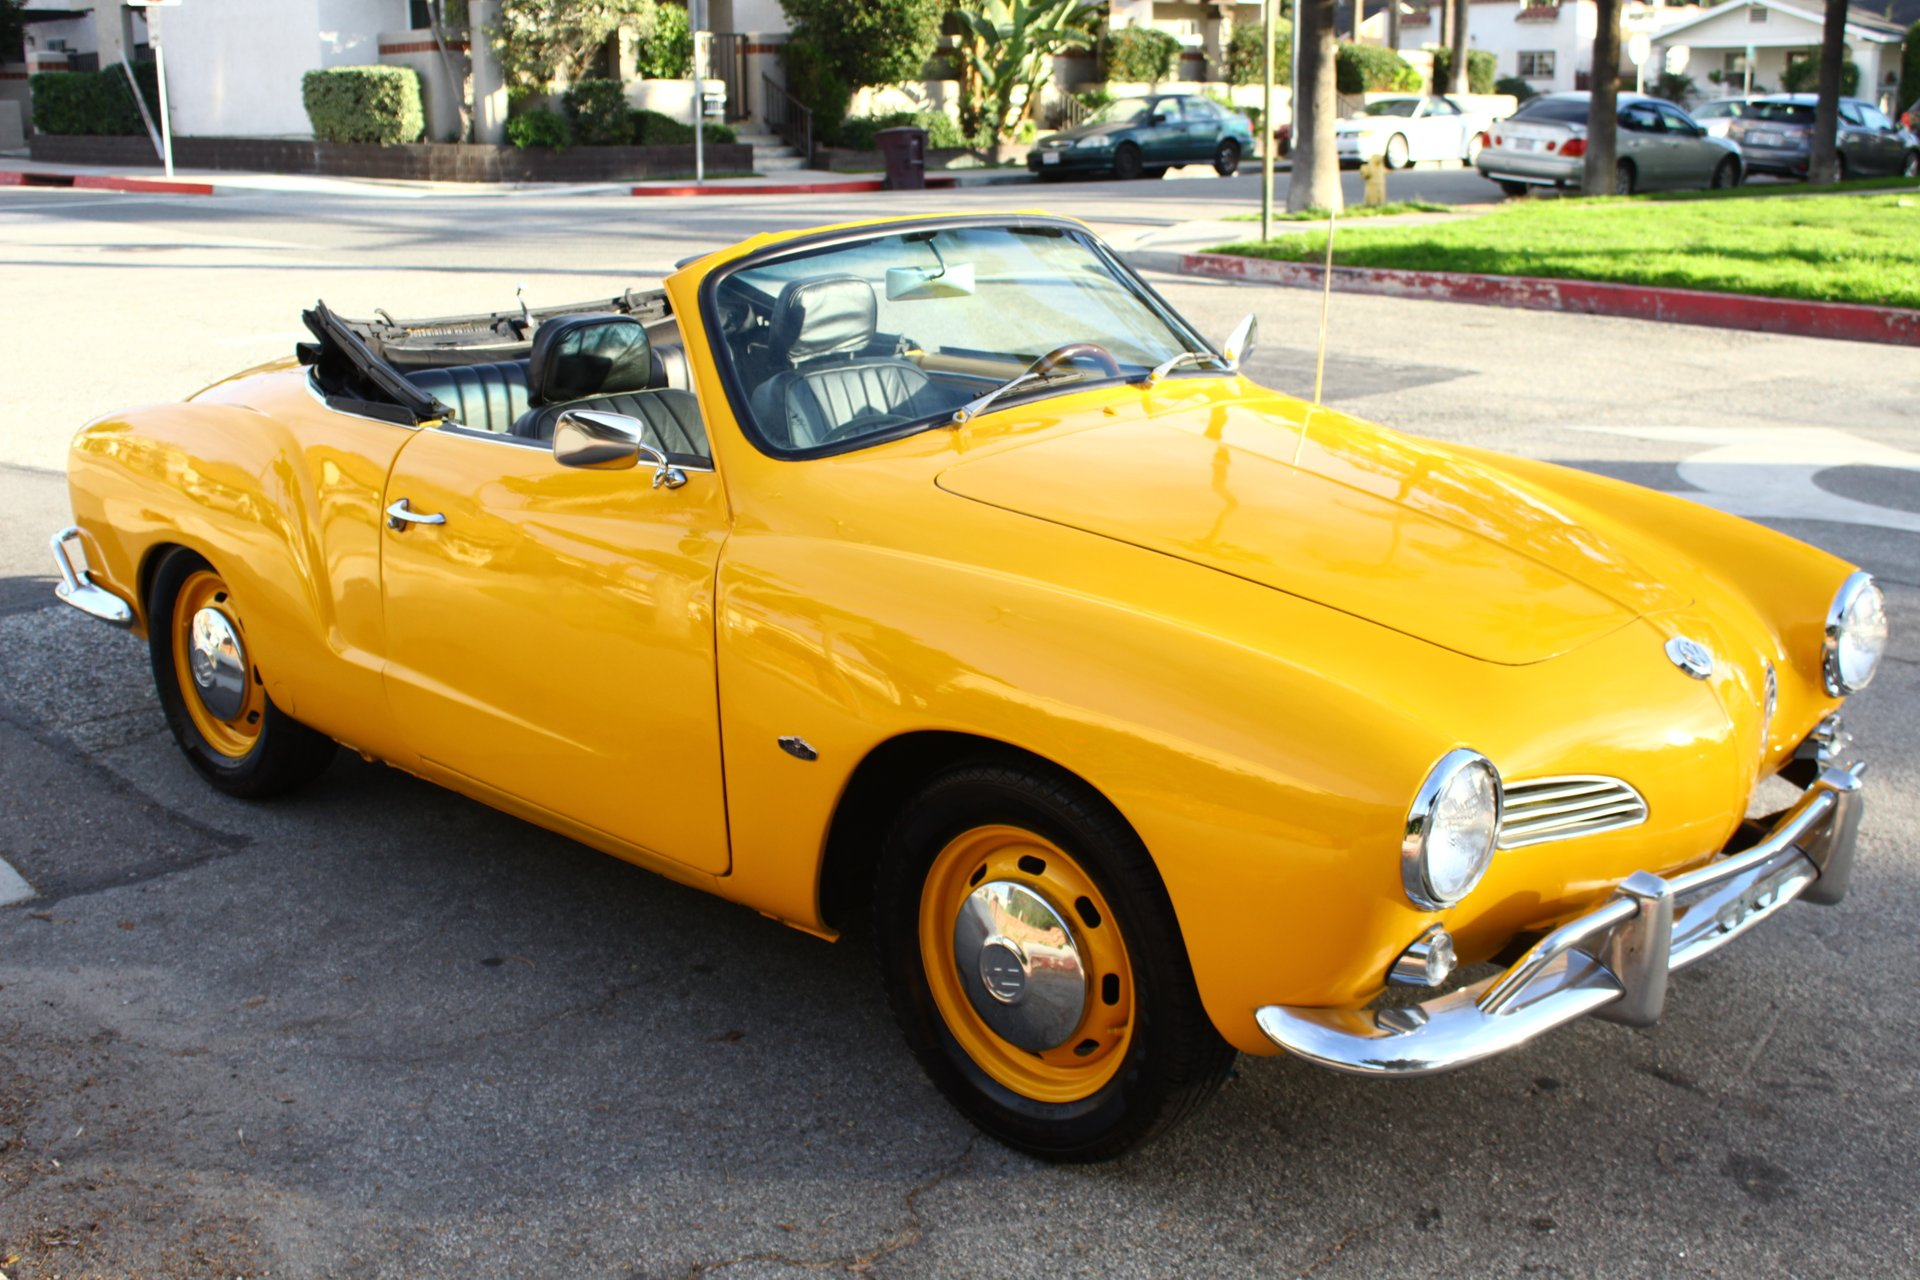 1966 Volkswagen Karmann Ghia Vintage Car Collector